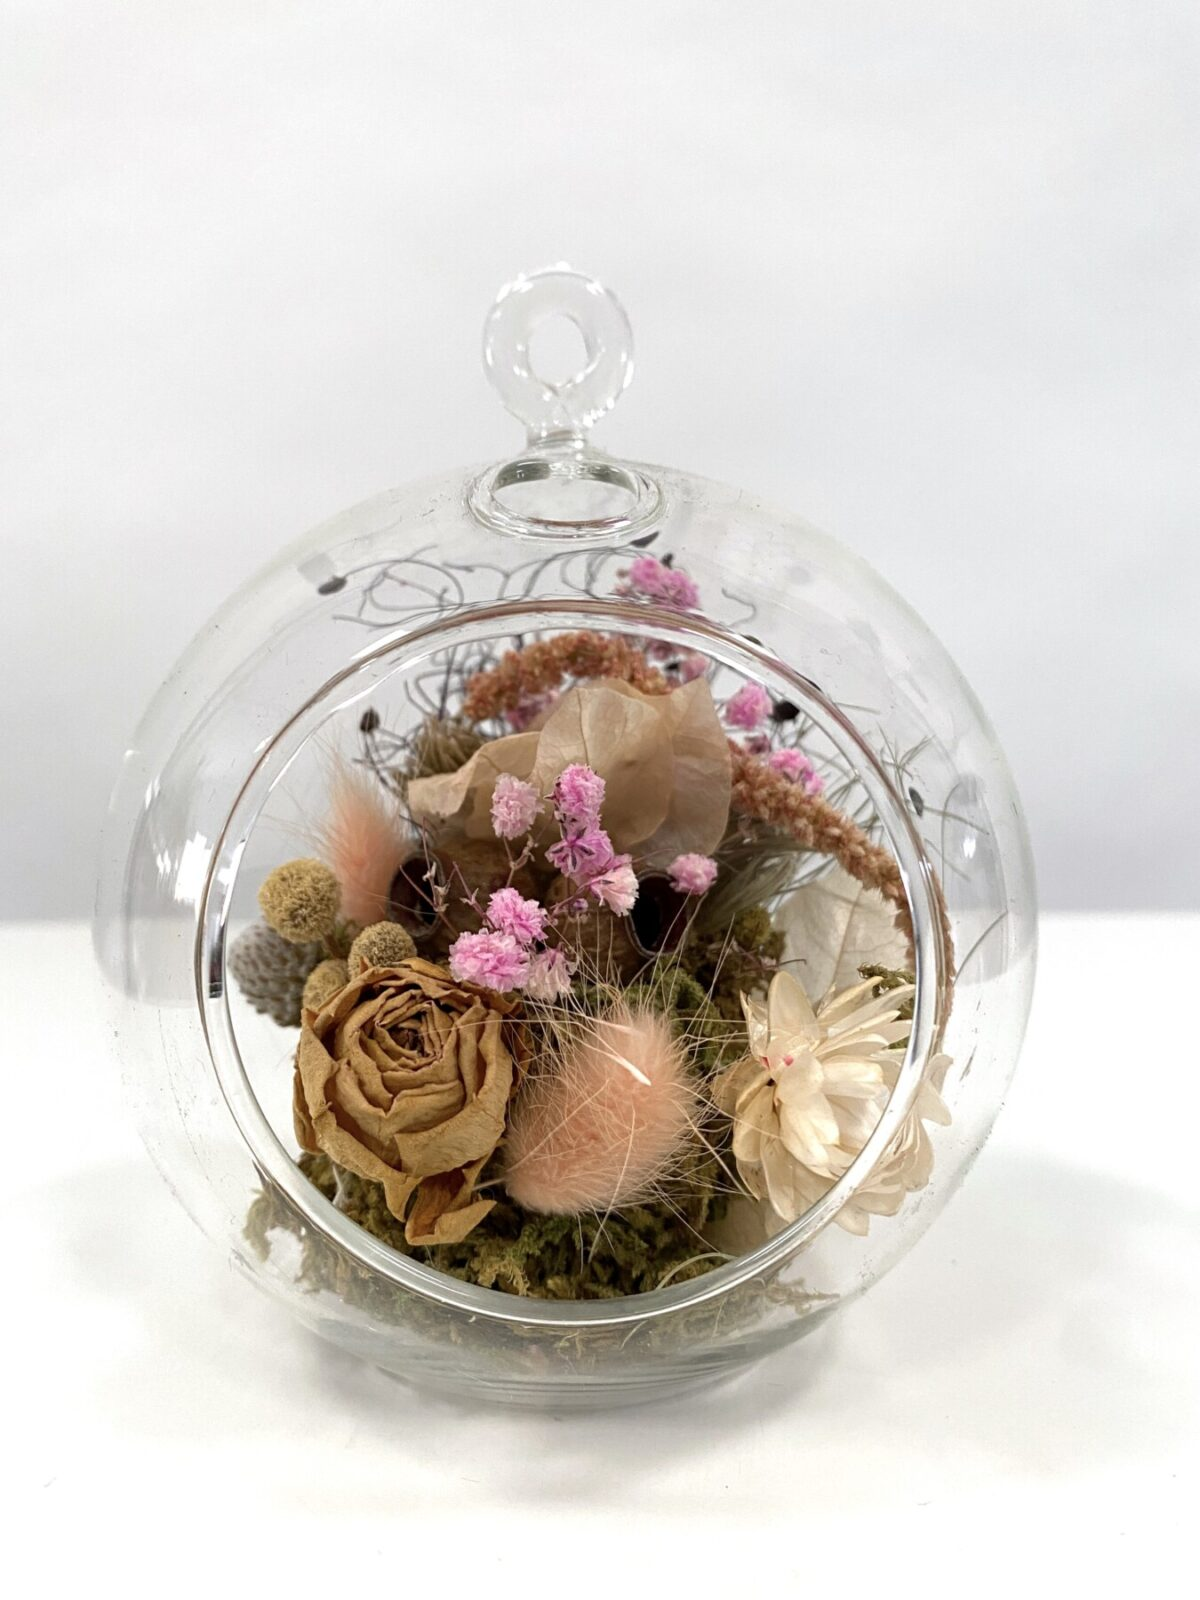 Everlasting Dried Flowers: Vitality   Order Online Flower Delivery Melbourne, Thrive Flowers